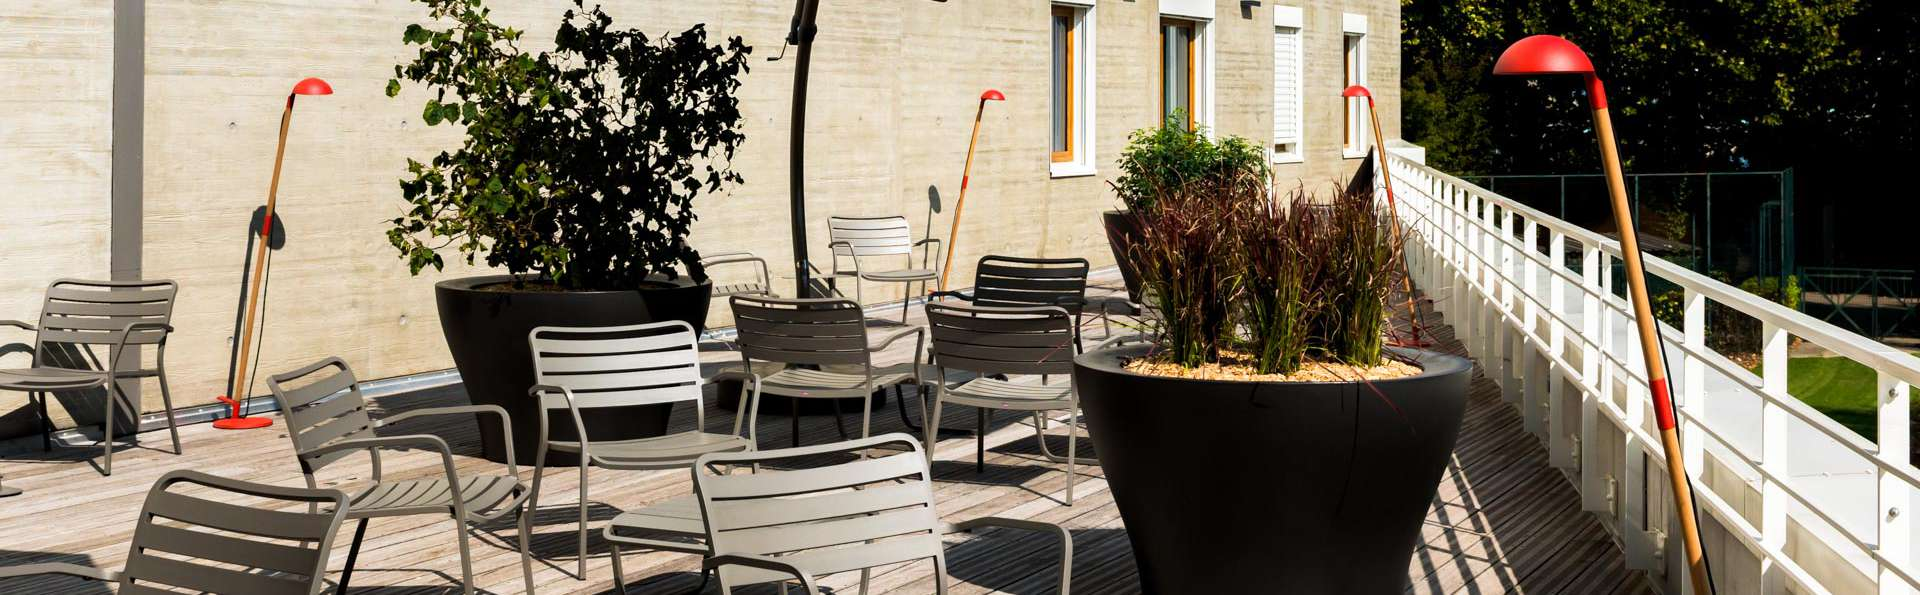 OKKO Hotels Grenoble - EDIT_TERRACE_02.jpg